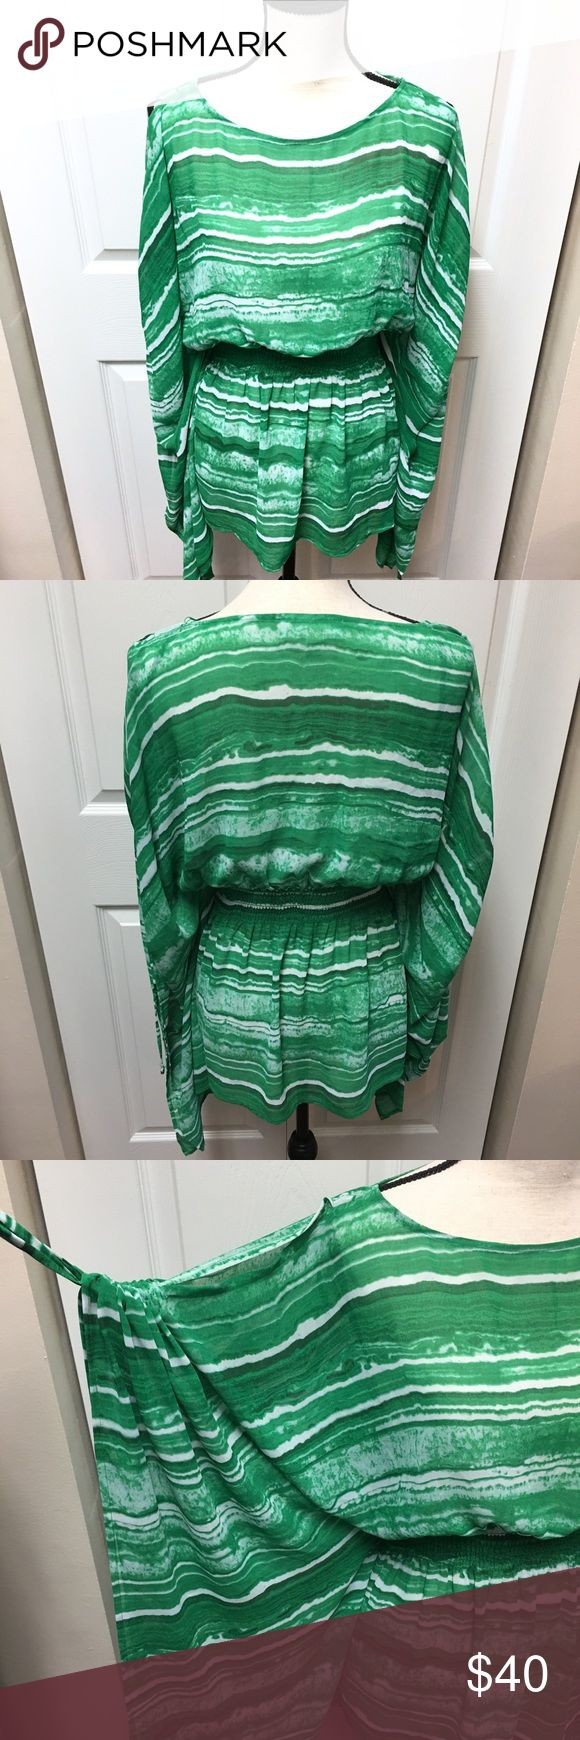 Authentic Michael Kors Sheer cold shoulder top Wear it as a holiday top or a bikini coverup in Miami. Such a versatile top. Like new! Cold shoulder with adjustable sleeves. Stretchy band around the waist. MICHAEL Michael Kors Tops Blouses